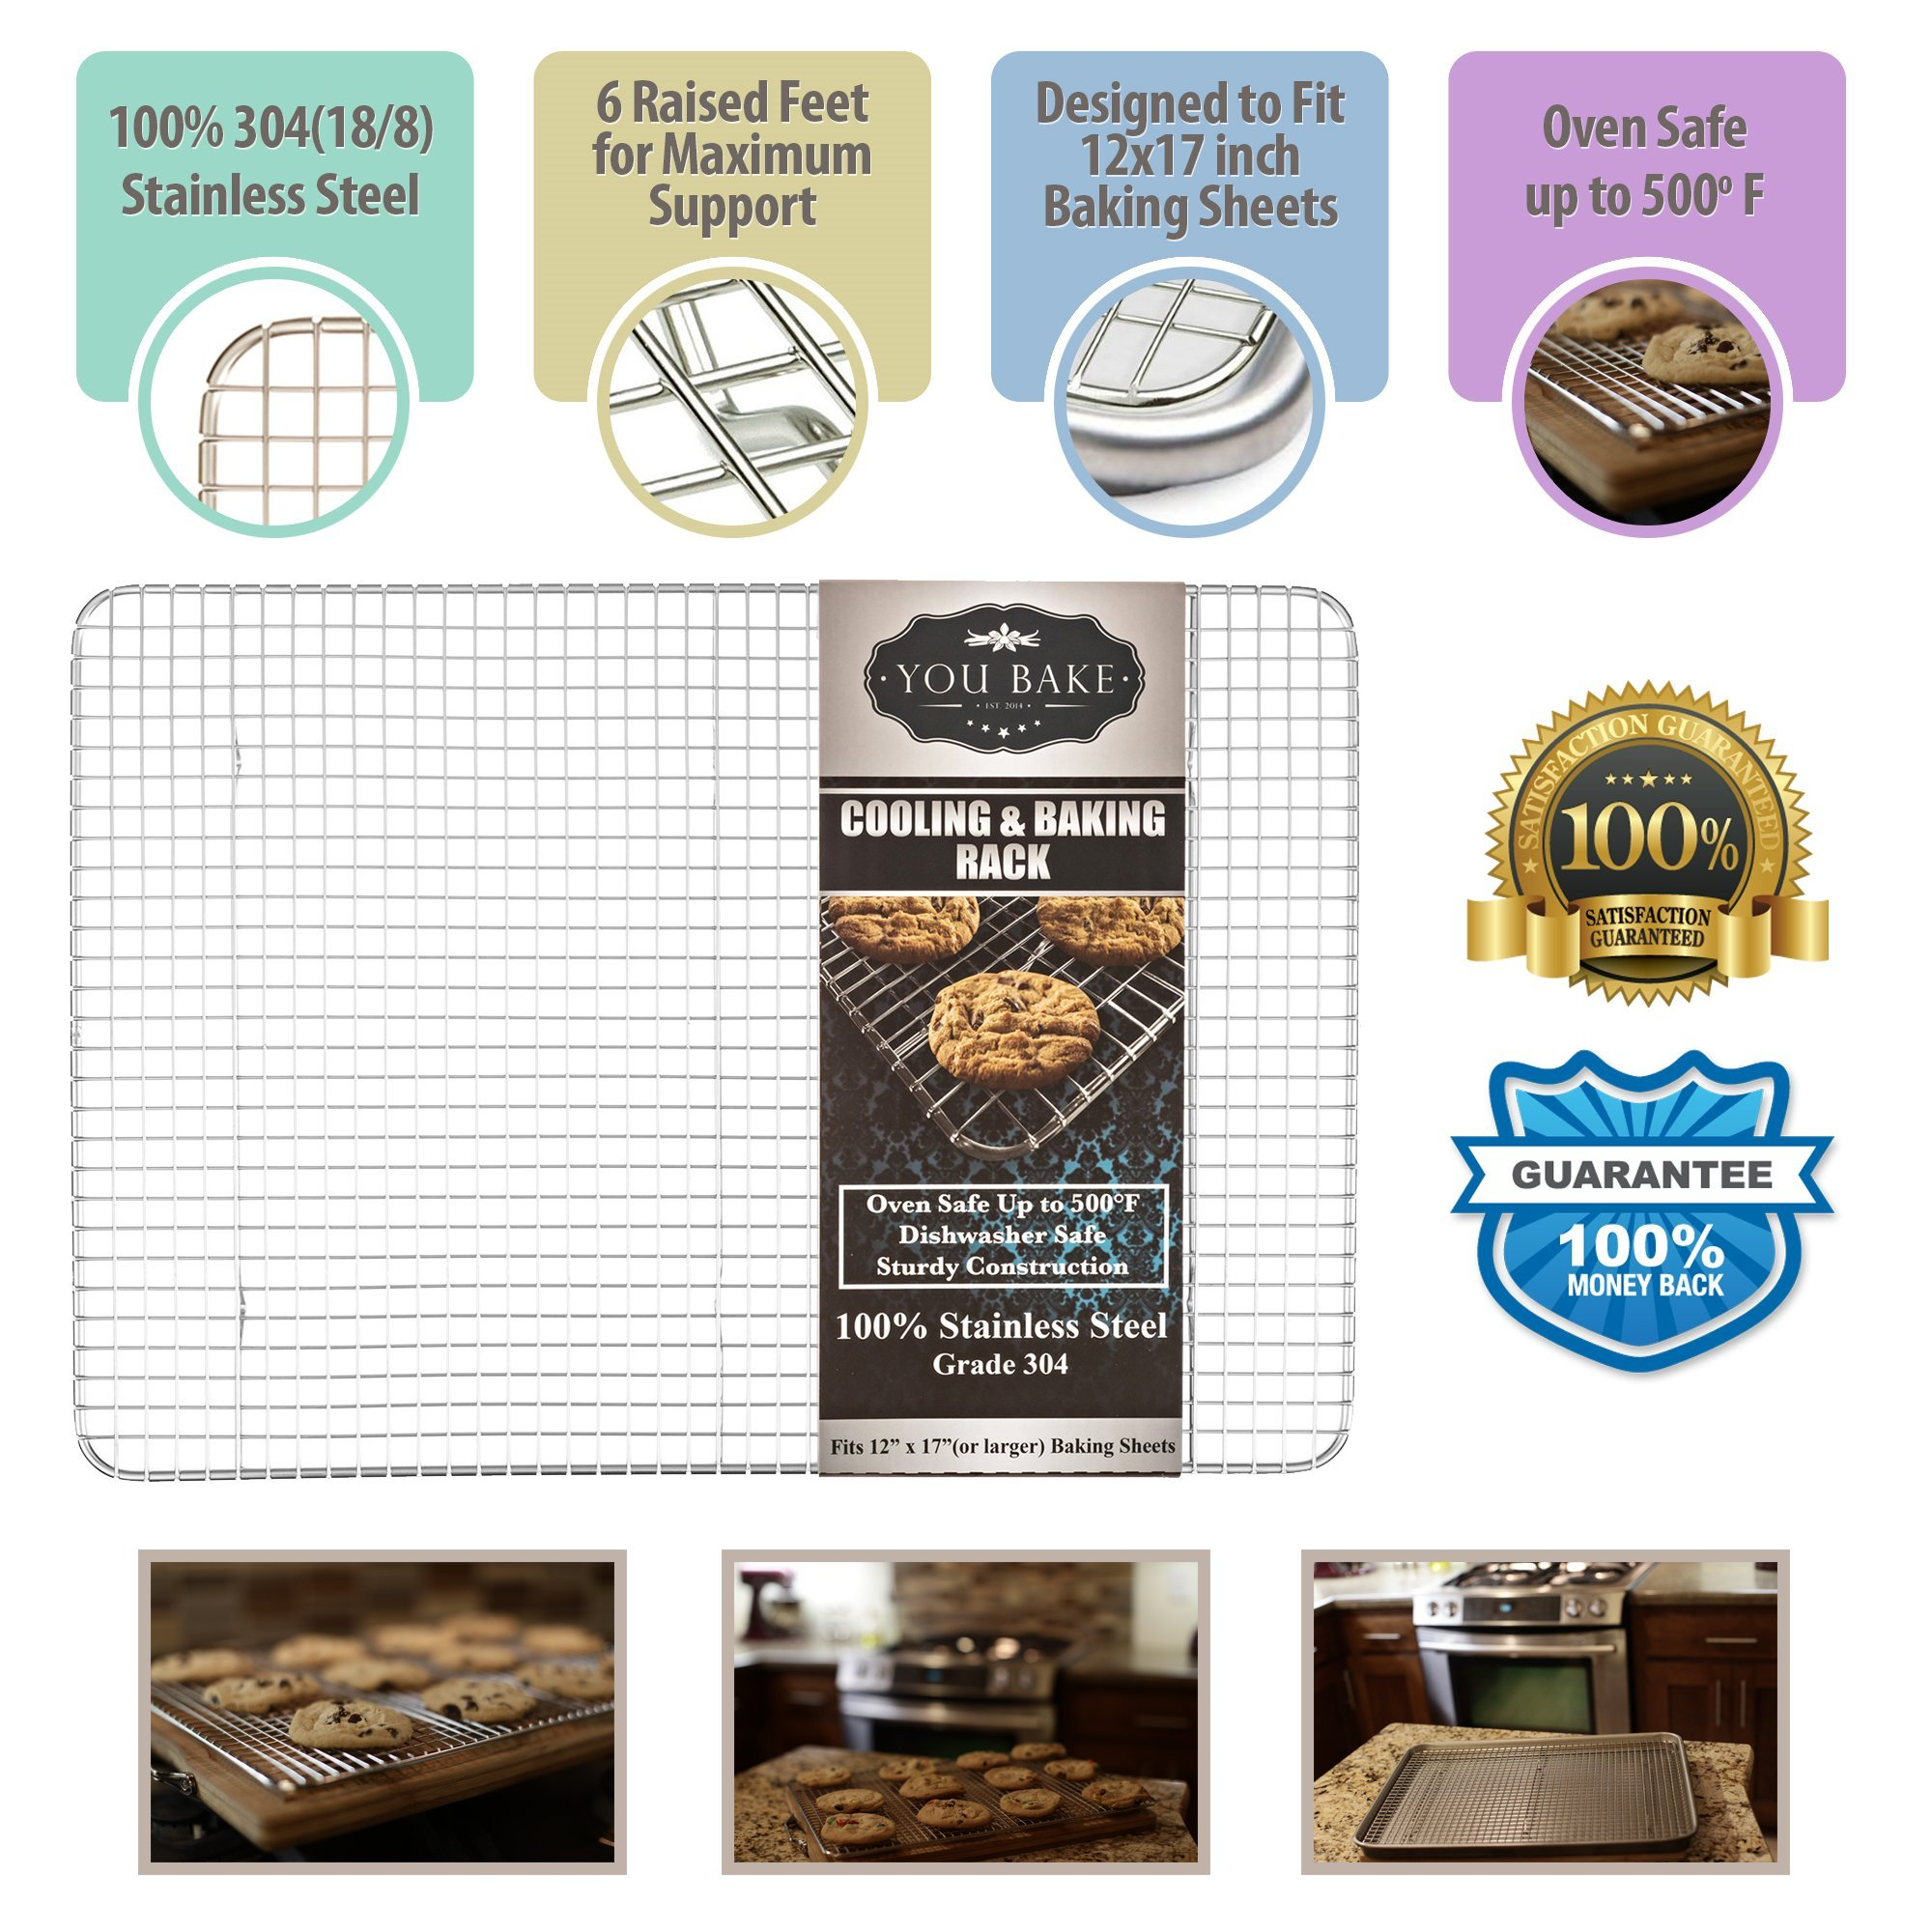 You Bake Stainless Steel Cooling Rack - Made for 12''x 17'' Baking Sheets and Pans - Oven and Dishwasher Safe. Also Great for Baking, Smoking, Grilling, and Roasting. by You Bake (Image #3)